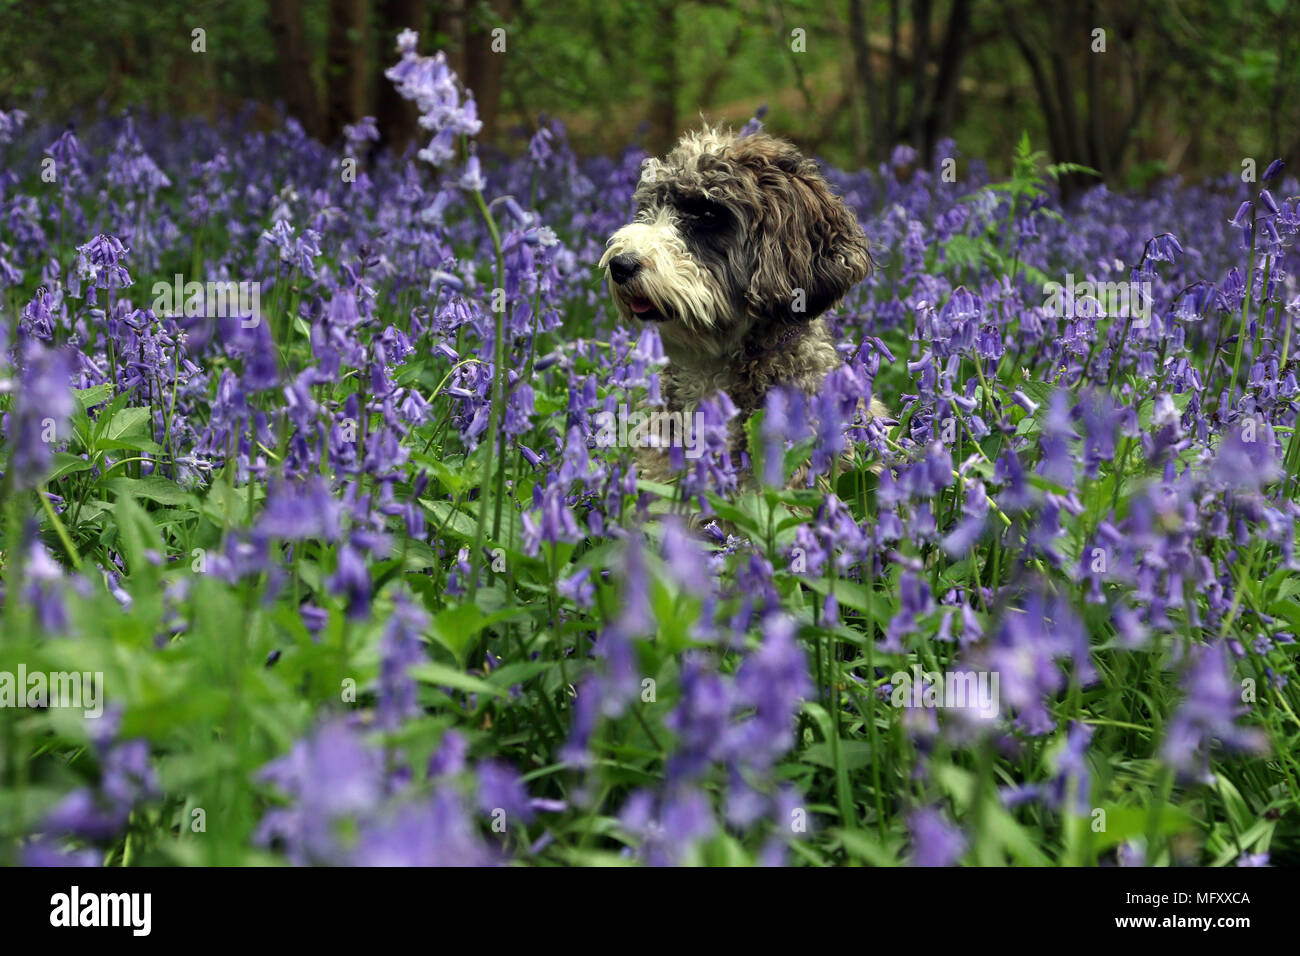 Cookie the cockapoo dog amongst the bluebells as they carpet the floor of a woods in Peterborough, Cambridgeshire, on April 26, 2018. - Stock Image